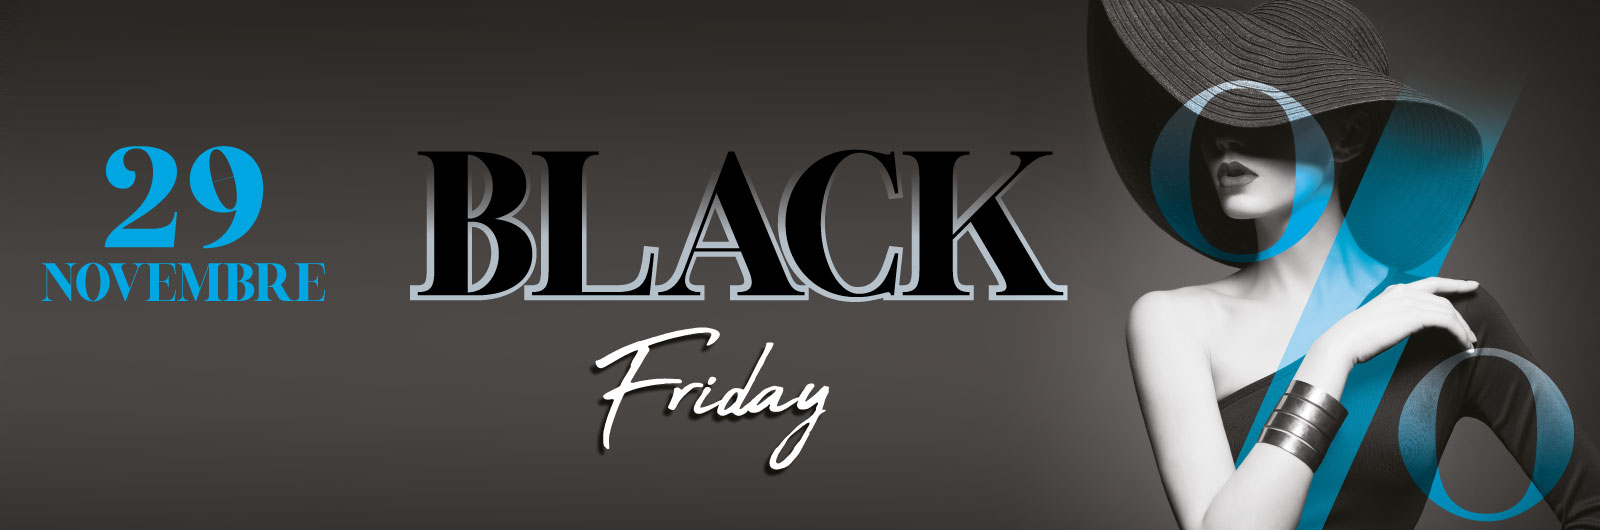 banner_blackfriday2019